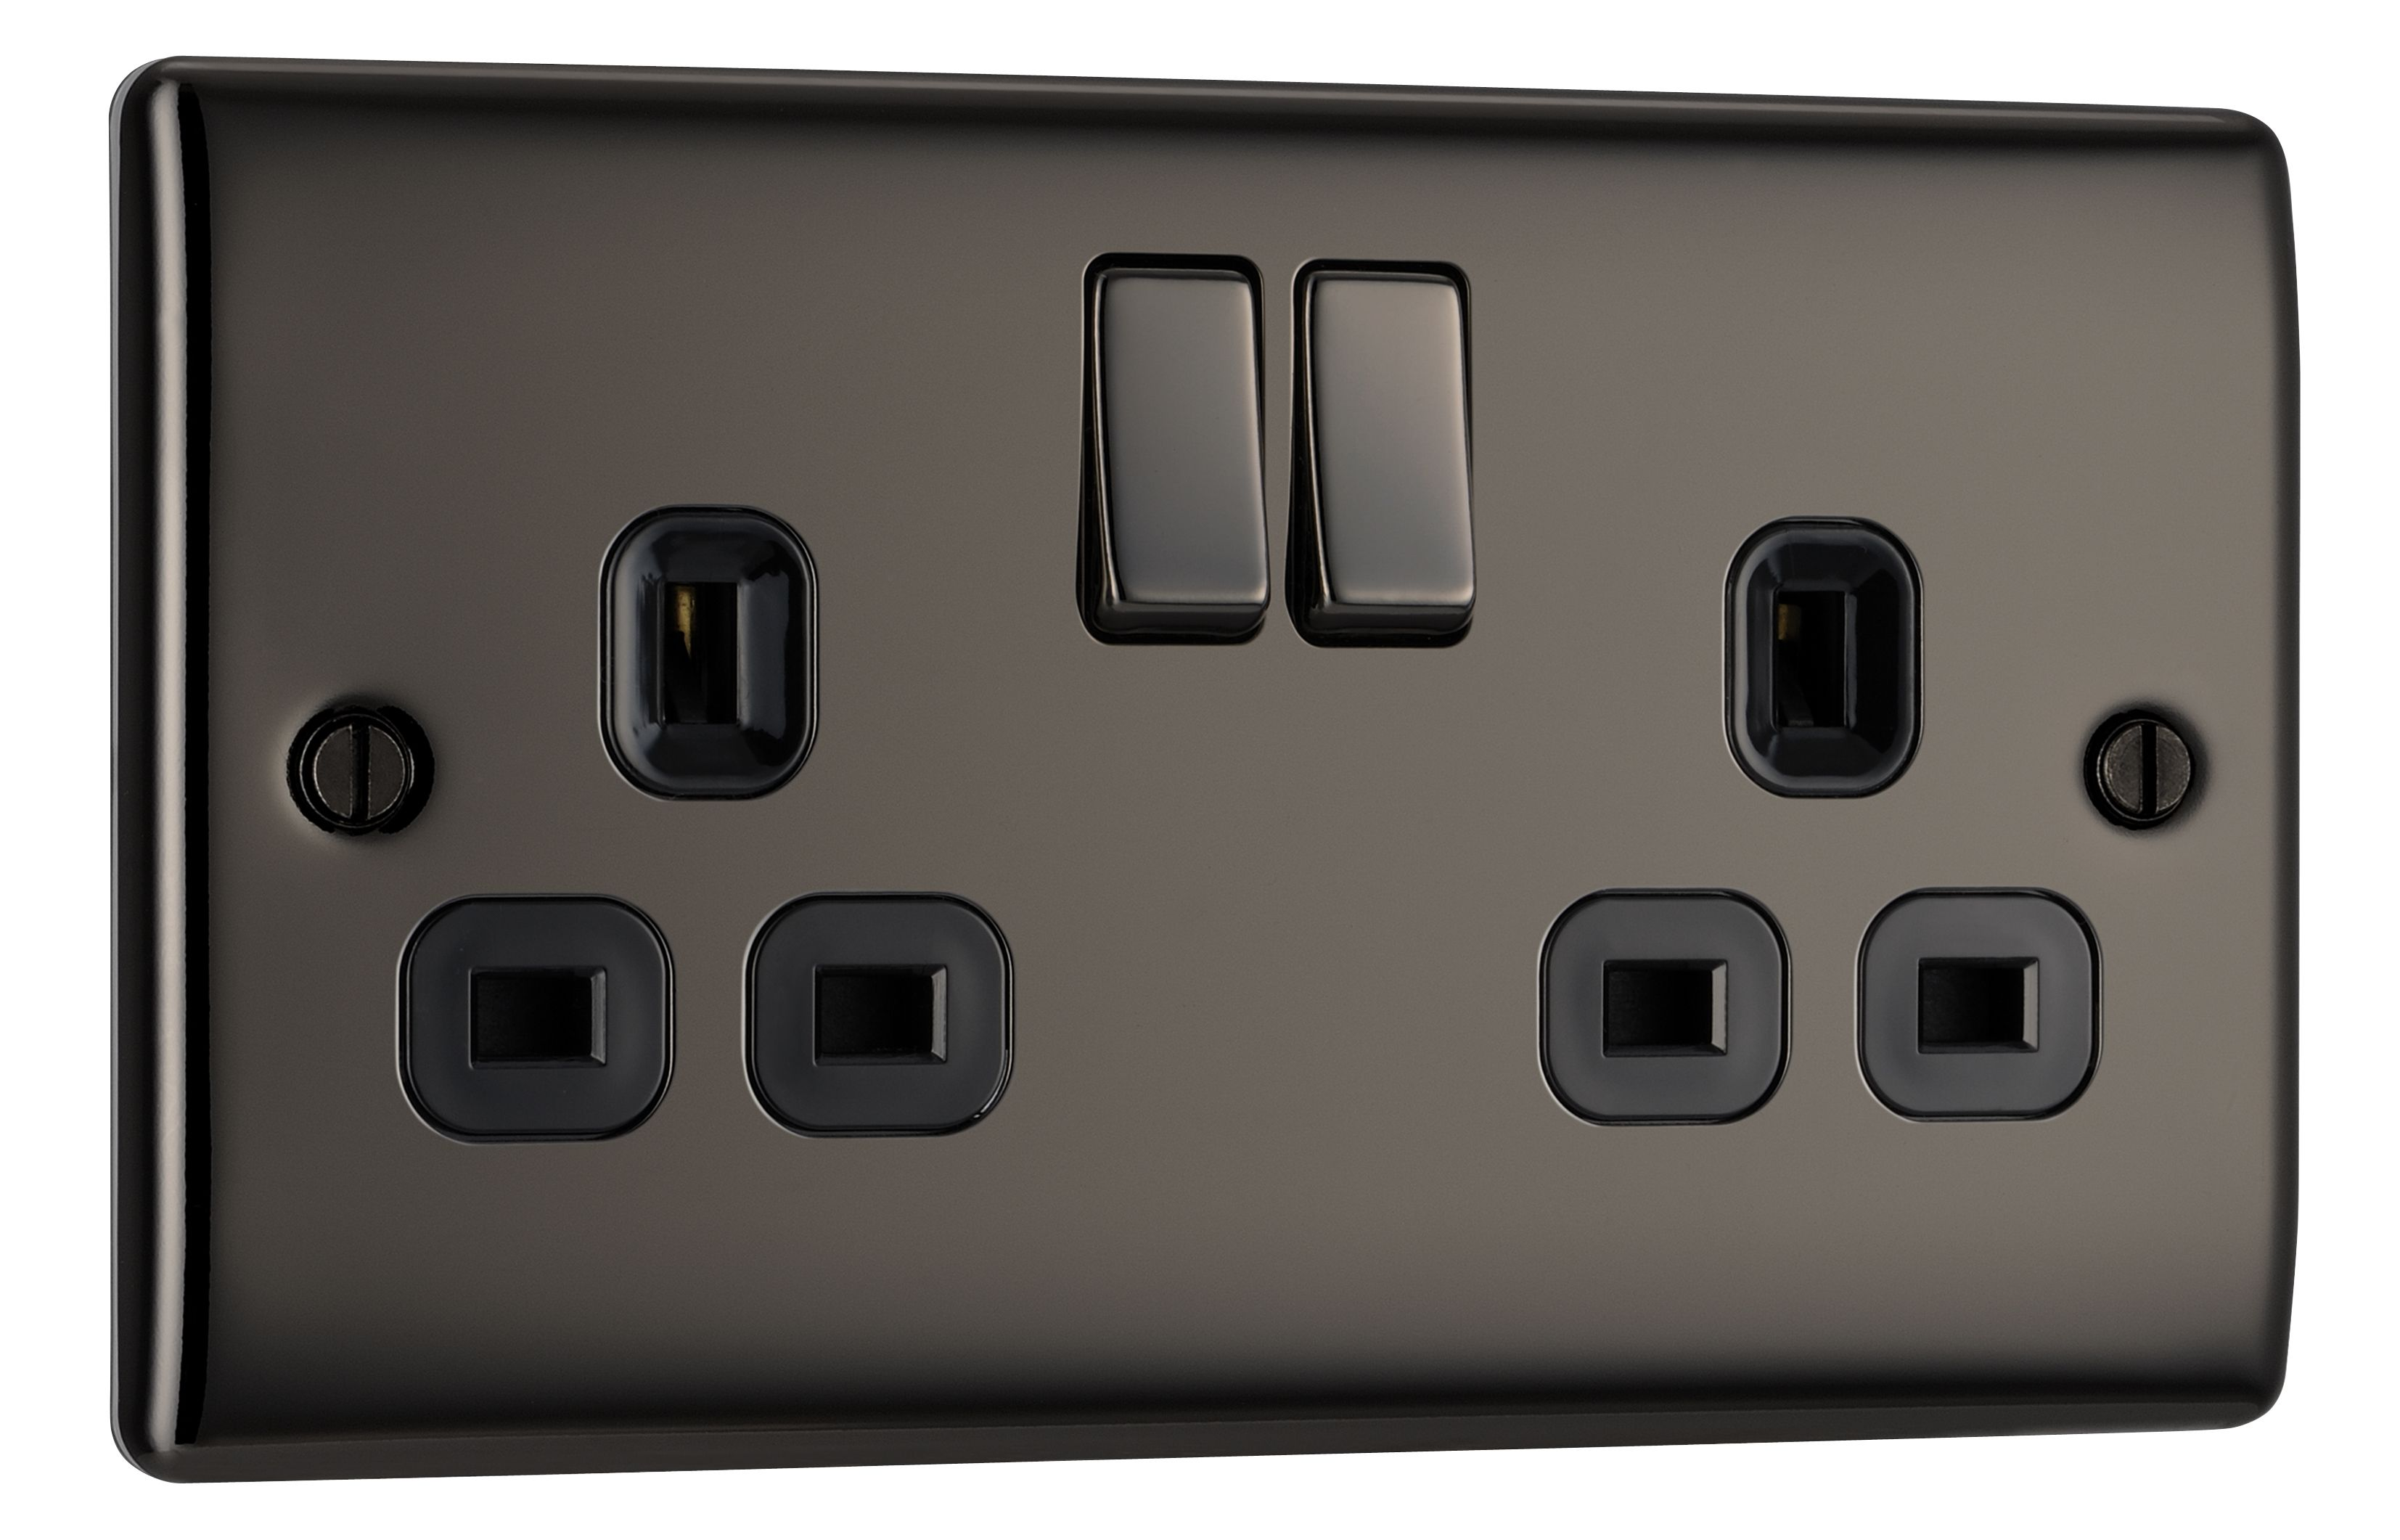 ideas for lights on a outdoor garage - British General 13A Black Nickel Switched Double Socket